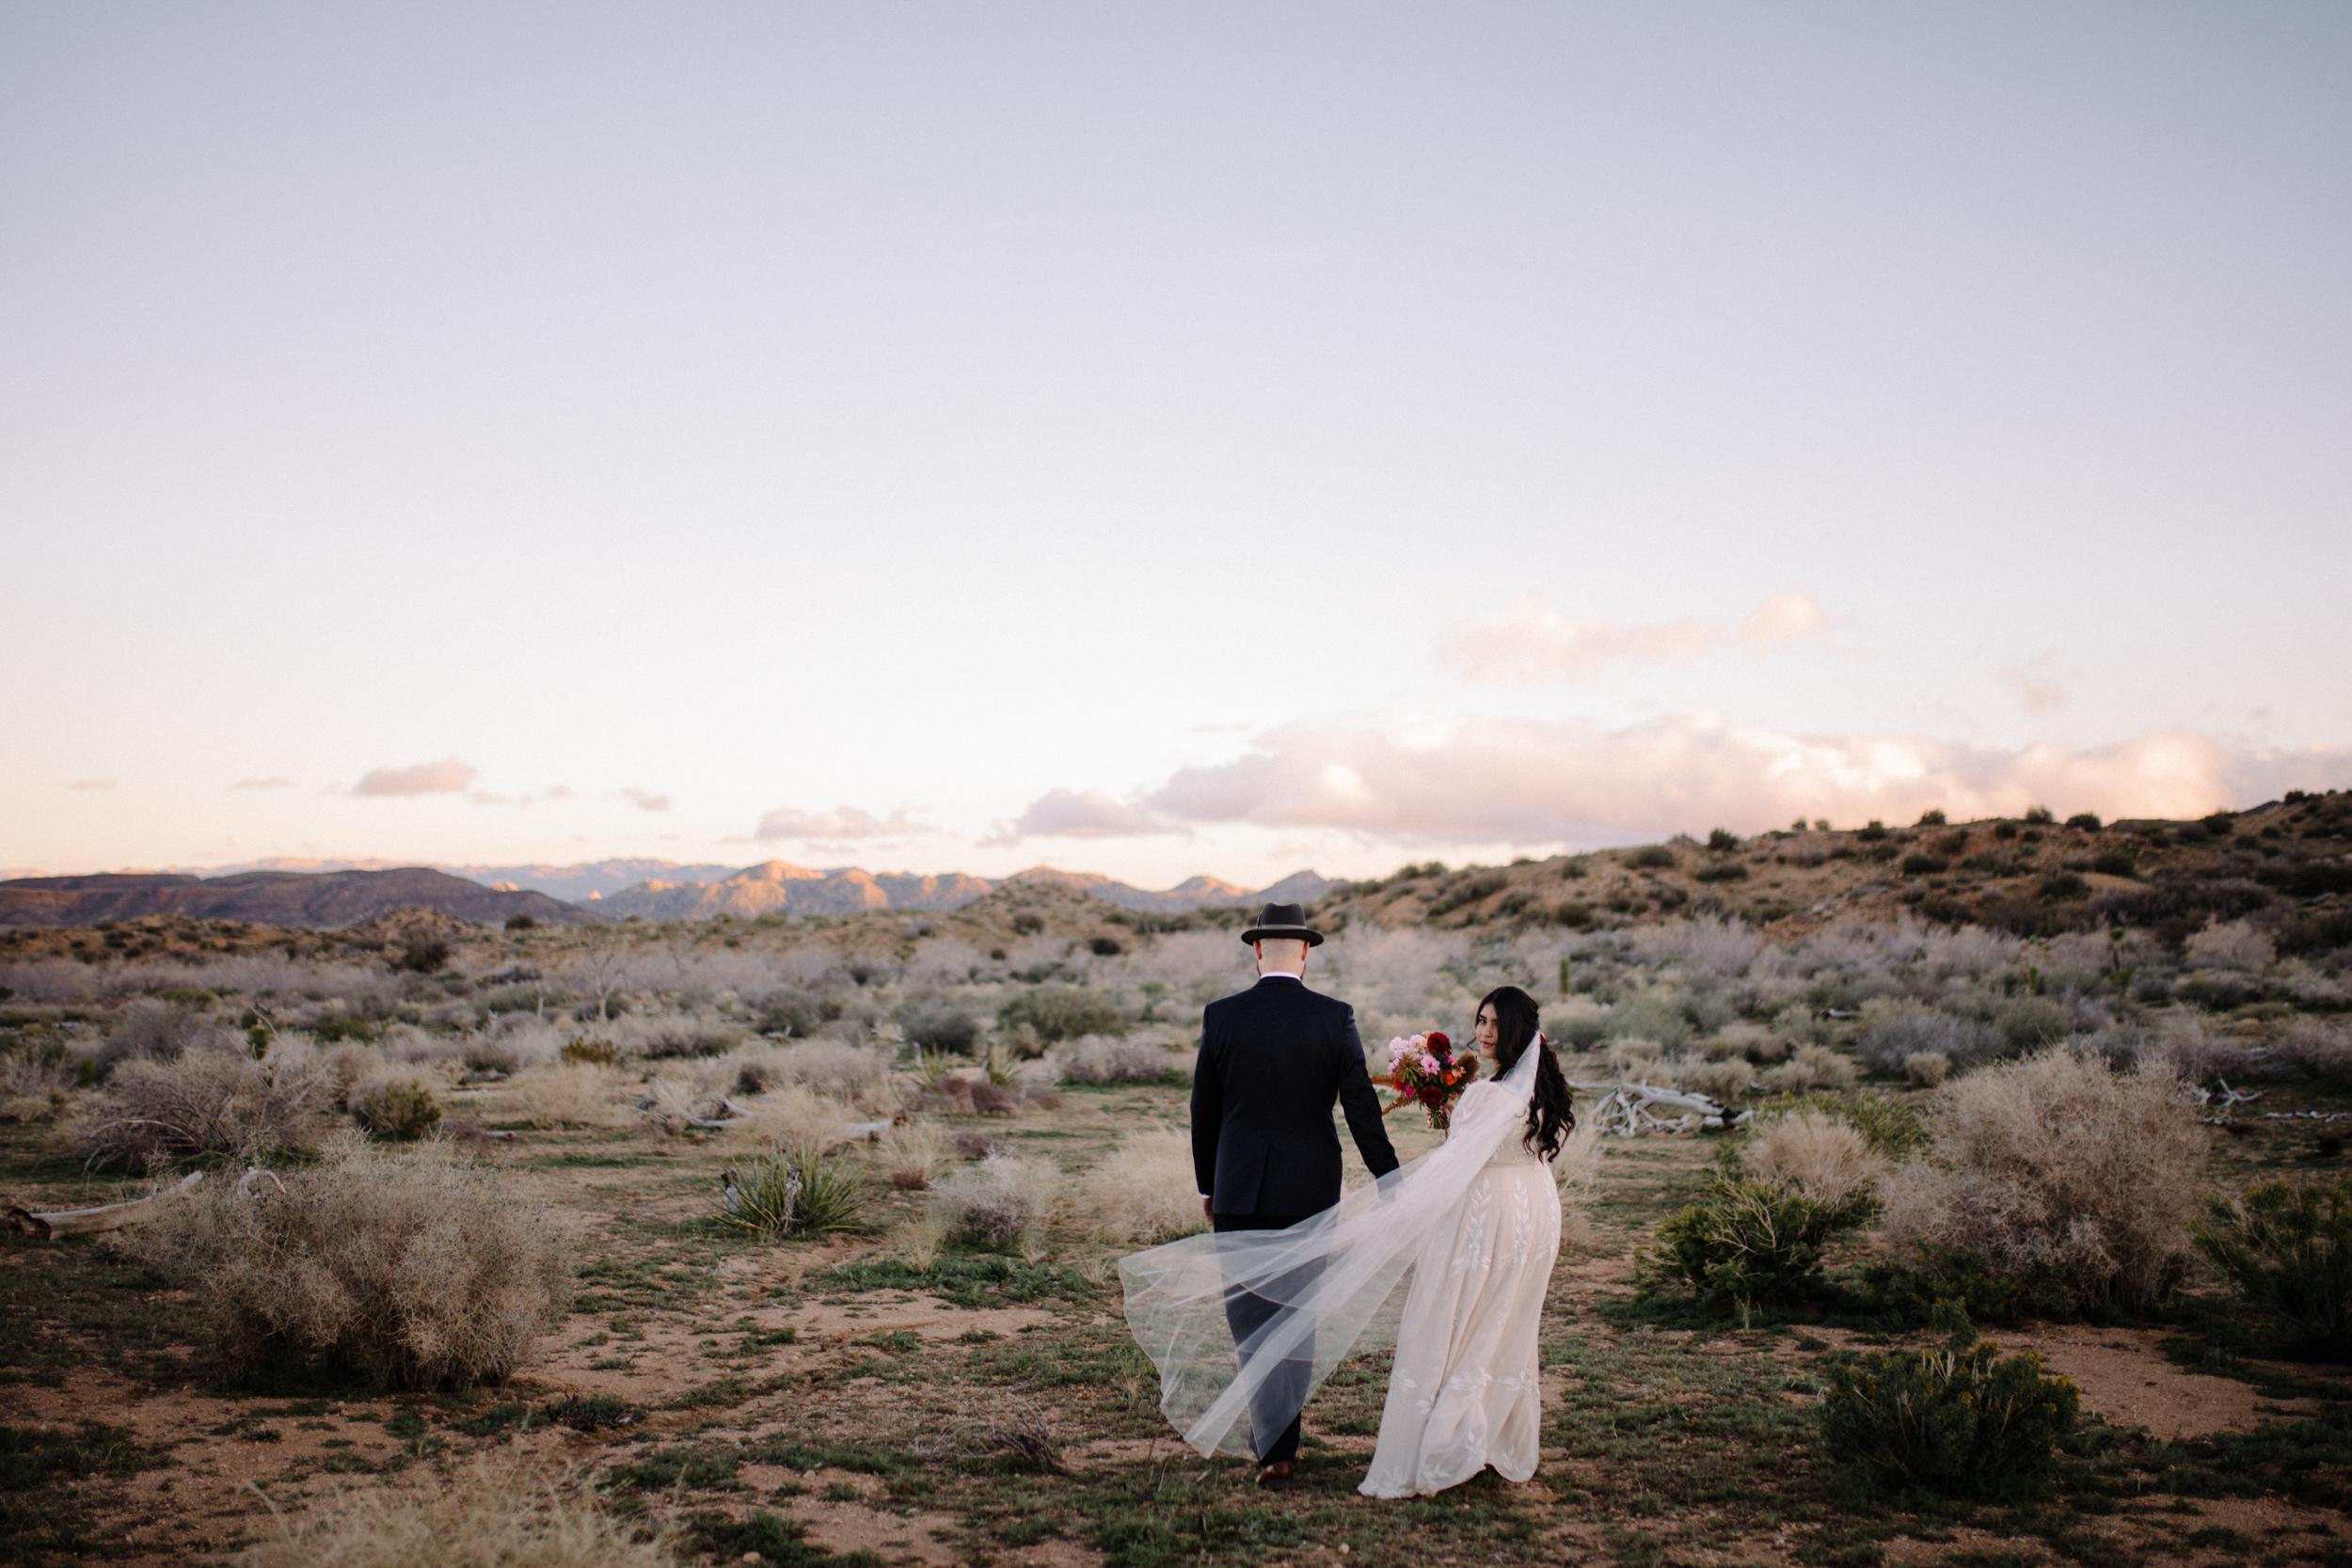 joshua_tree_wedding_rimrock_ranch-45.jpg